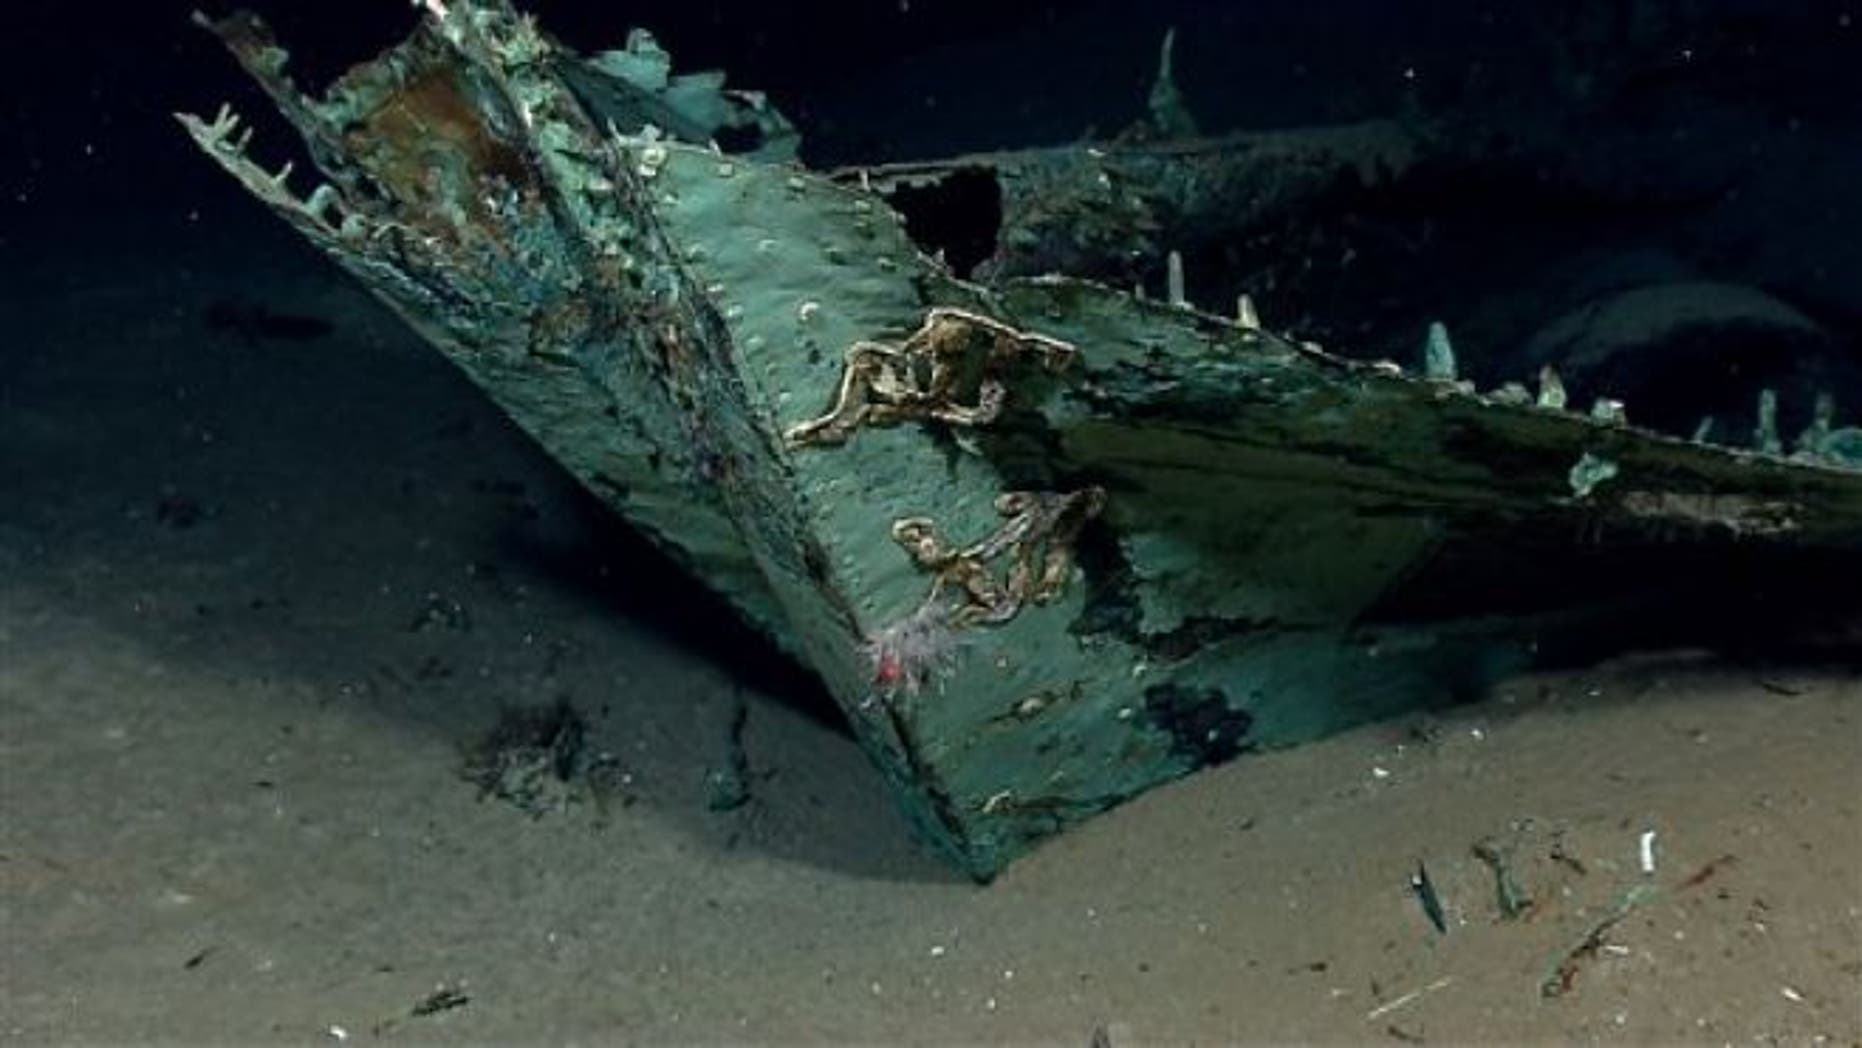 April 26, 2012: In this photo provided by NOAA Okeanos Explorer Program, a well preserved shipwreck is seen about 200 miles off the coast of La., at a depth around 4,000 feet, in the Gulf of Mexico.